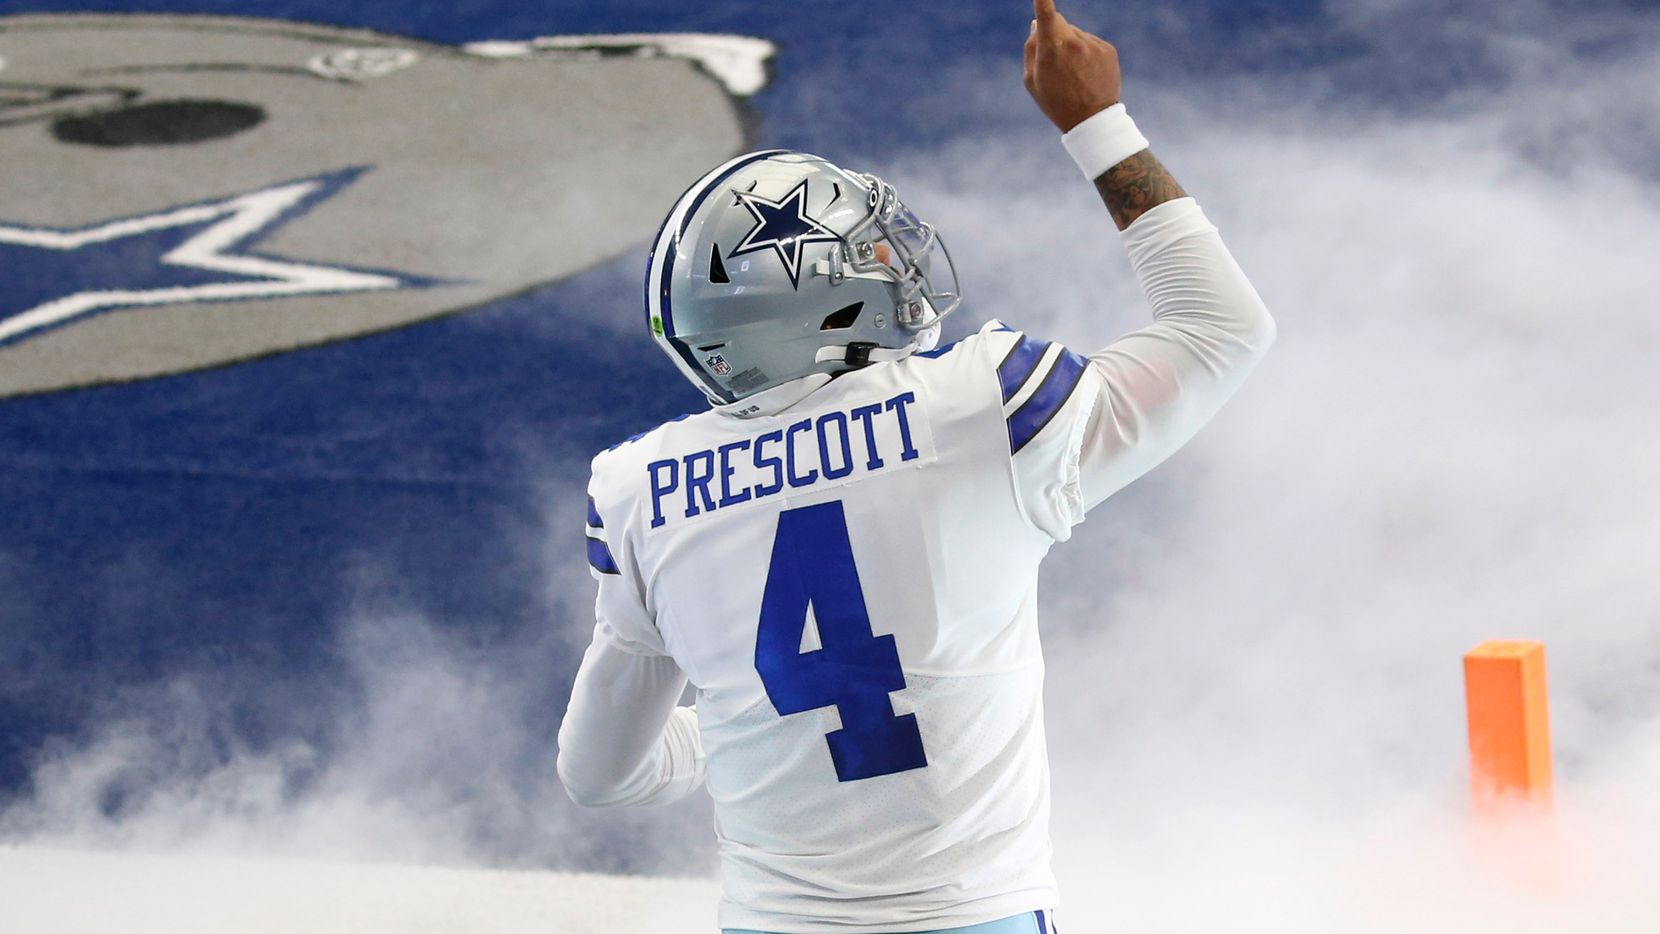 FILE - Cowboys quarterback Dak Prescott (4) takes the field during introductions before a game against the Falcons at AT&T Stadium in Arlington on Sunday, Sept. 20, 2020.